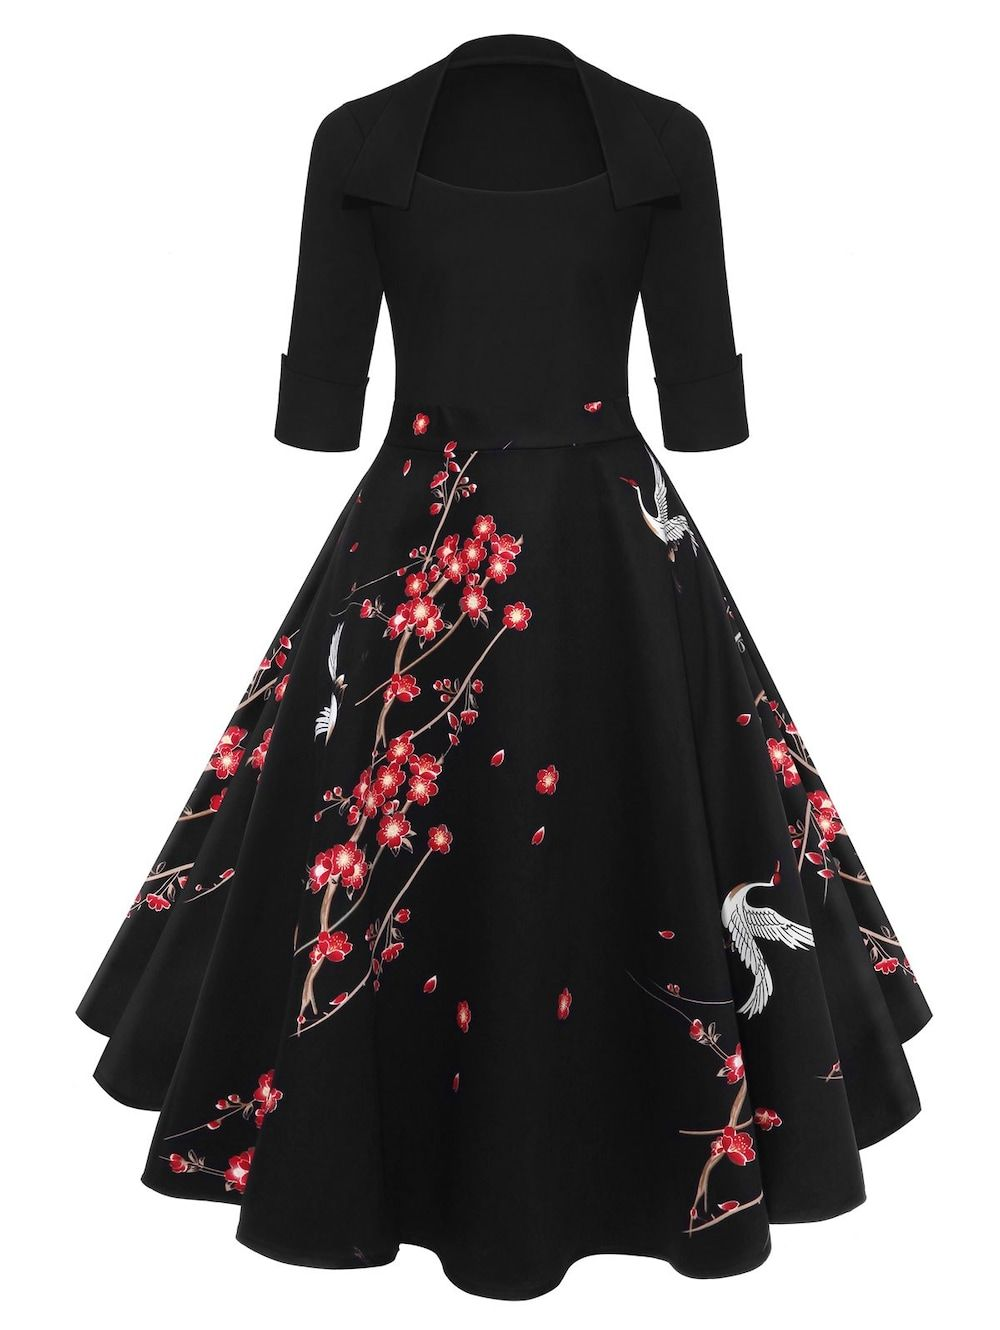 4fd8a0673ce Cheap Fashion online retailer providing customers trendy and stylish  clothing including different categories such as dresses